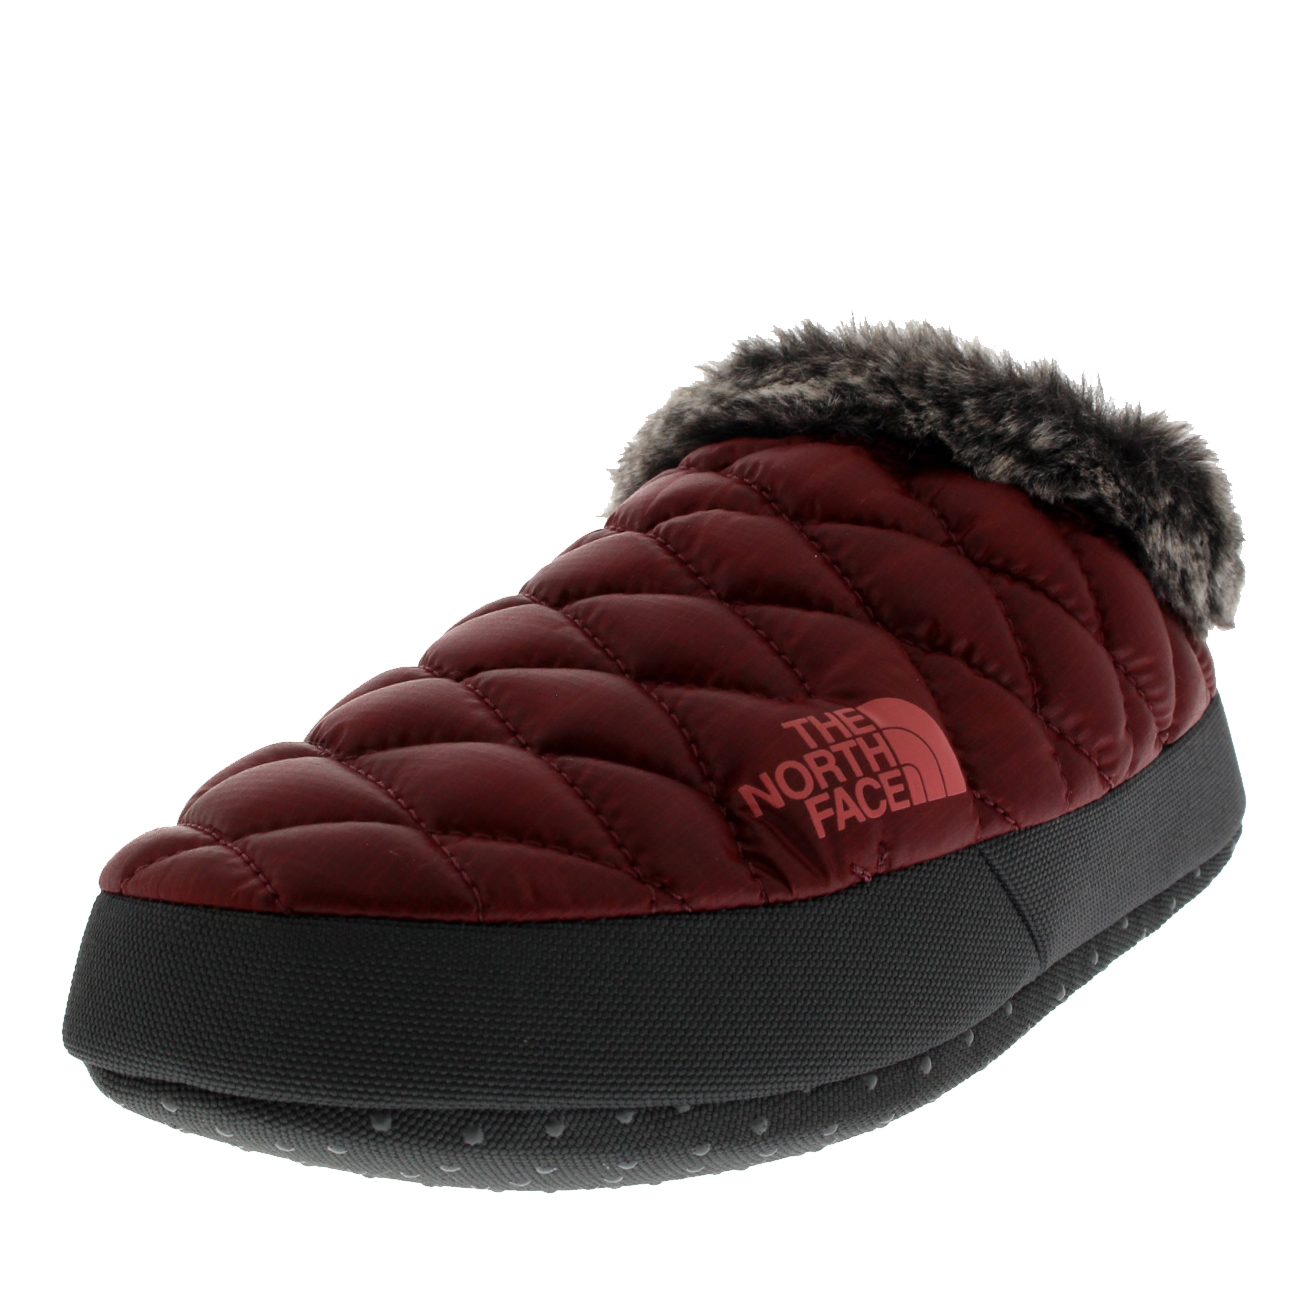 The North Face Thermoball Tent Mule Faux Fur IV